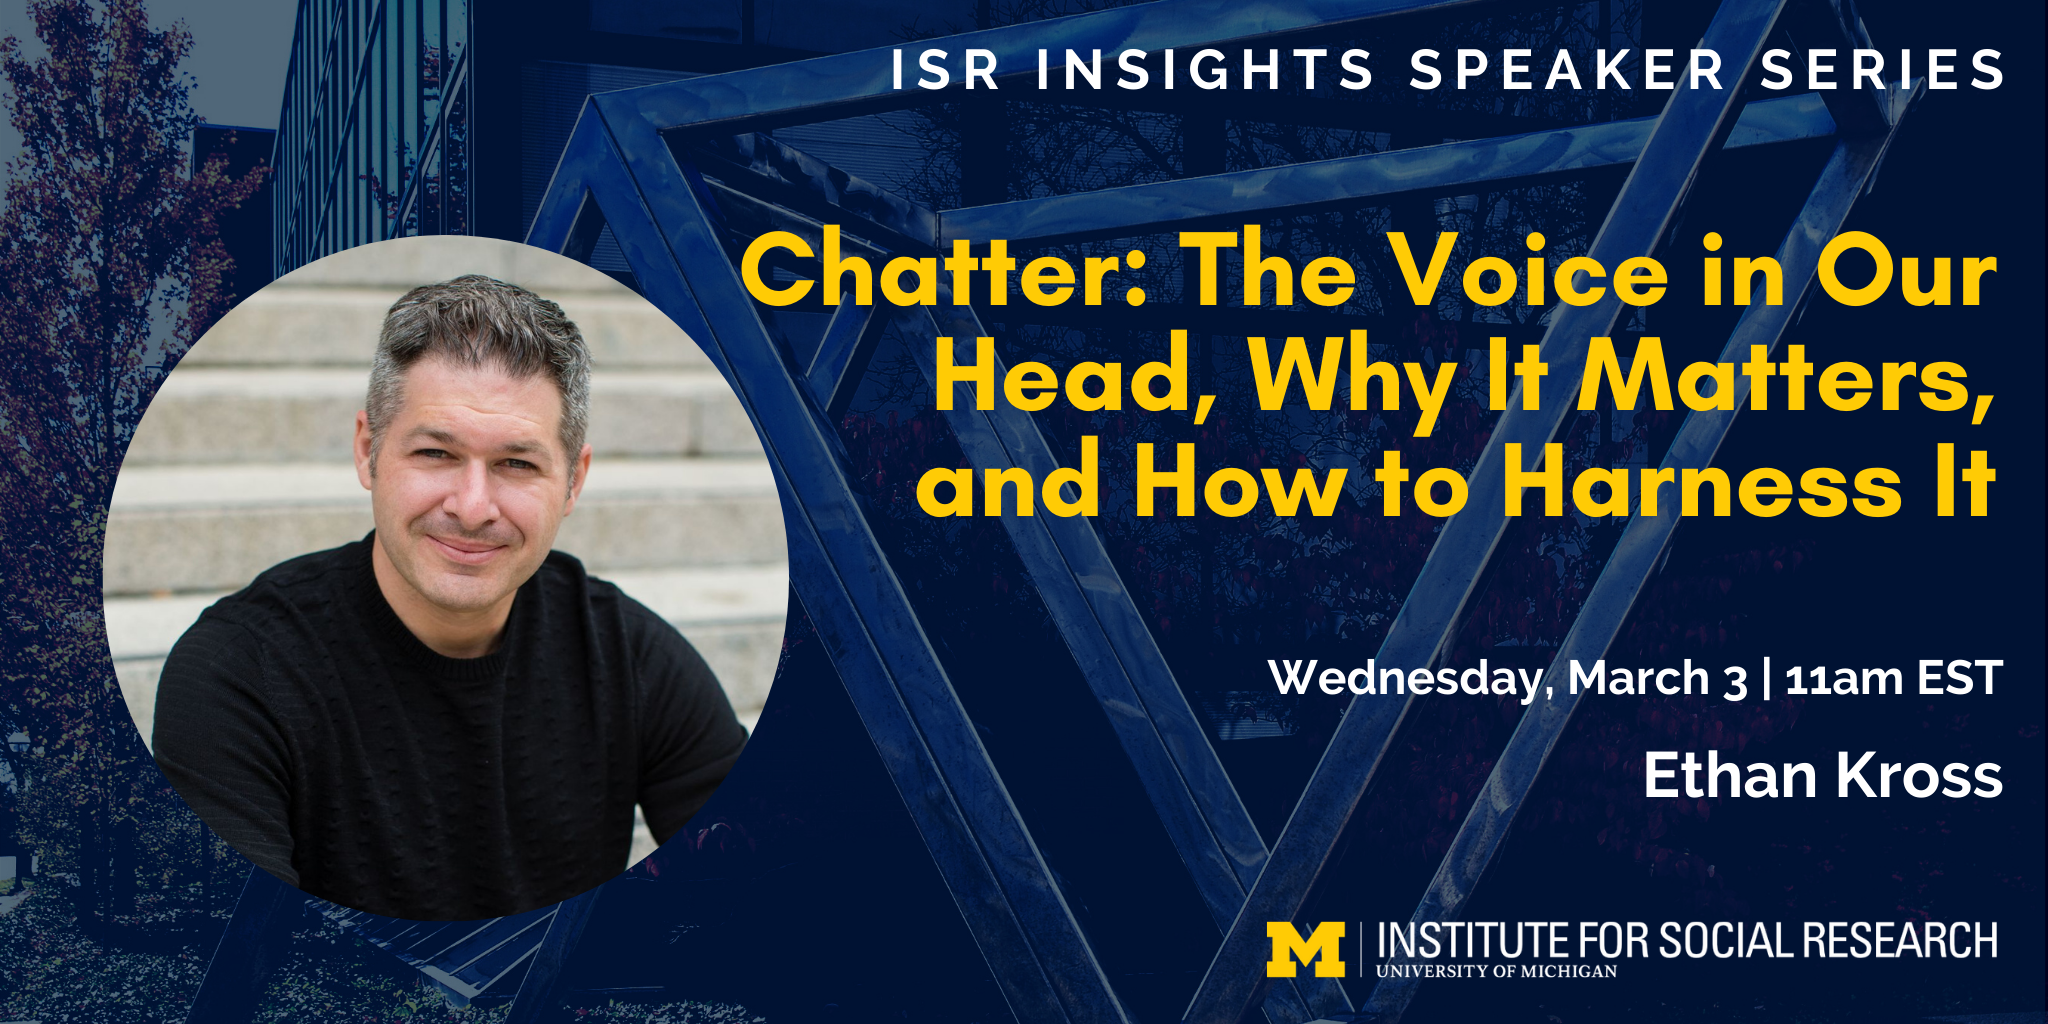 ISR Insights Speaker Series - Chatter: The Voice in Our Heads, Why it Matters, and How to Harness It. Wednesday, March 3 at 11am EST. Ethan Kross. University of Michigan Institute for Social Research